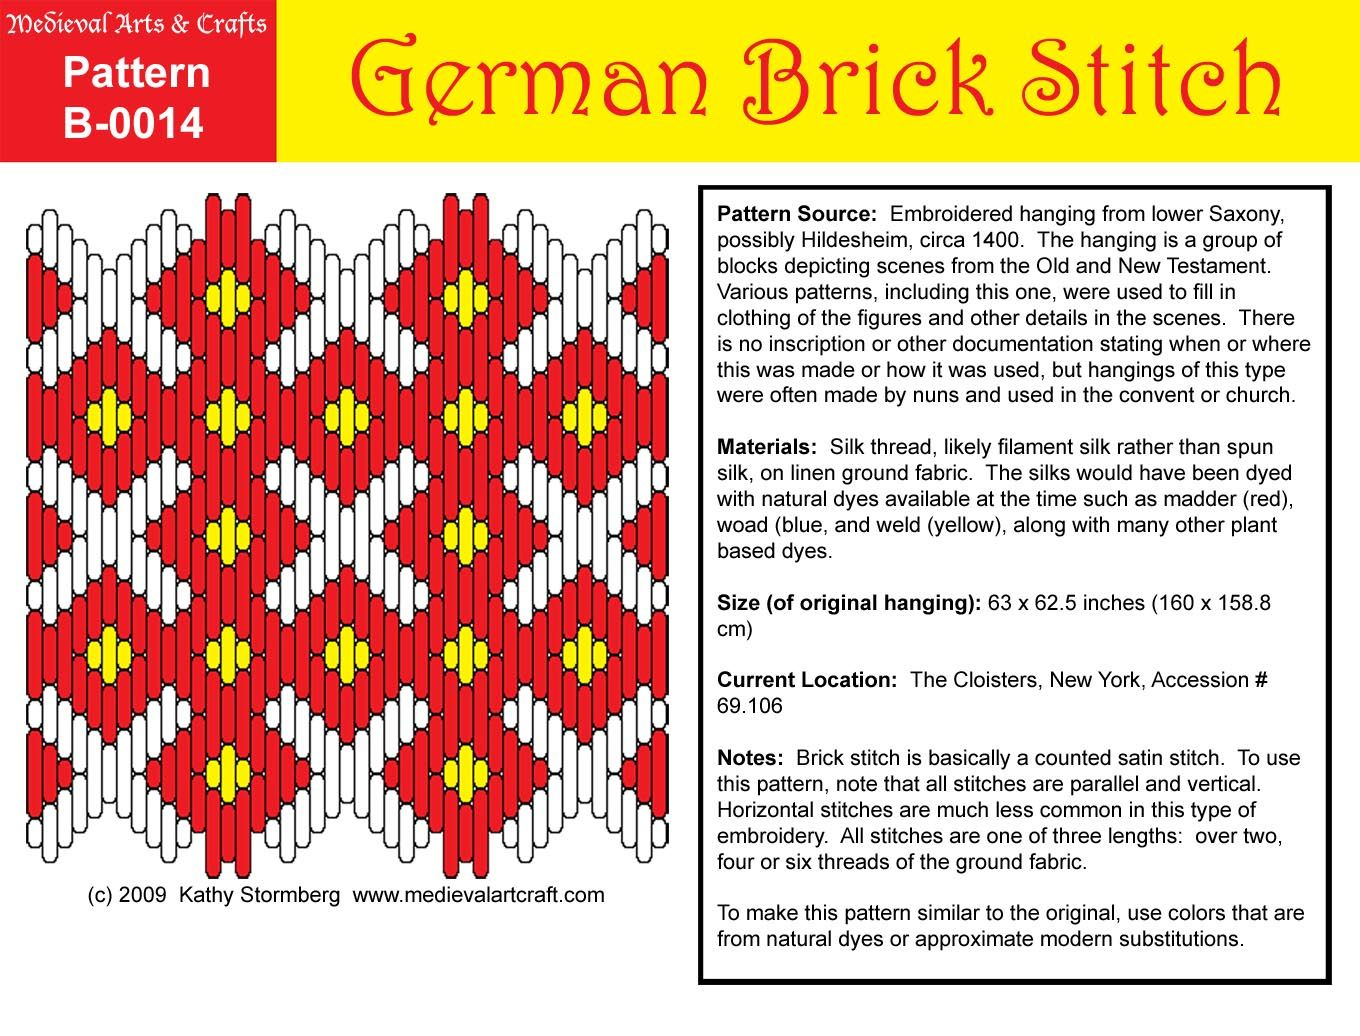 Brickstitch+pattern+14+handout_web.jpg] | CARTERAS B | Pinterest ...